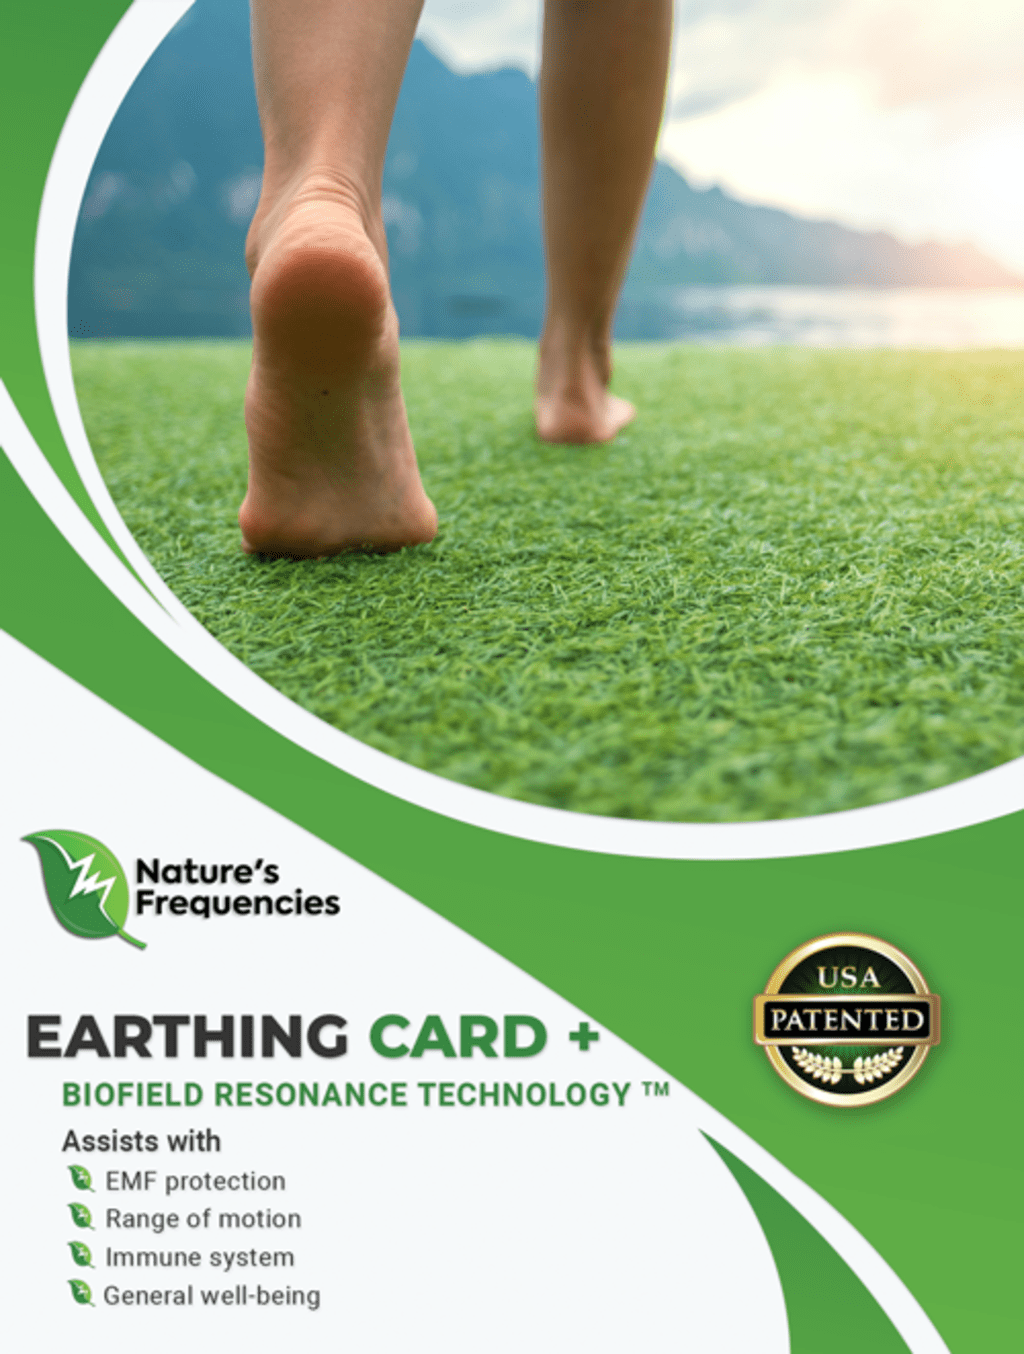 The Earthing Card +